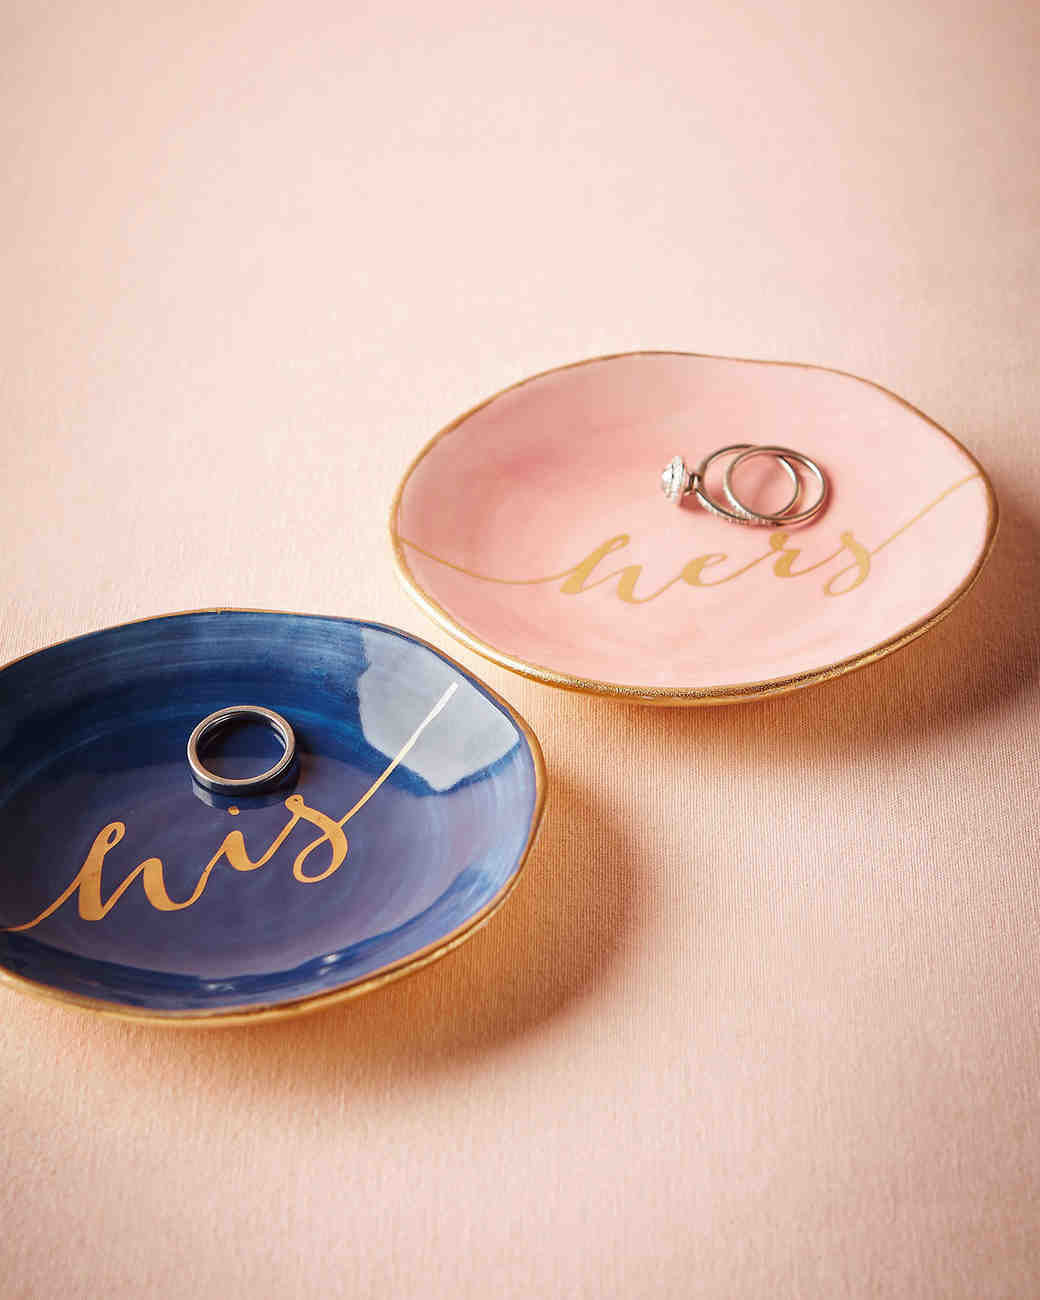 engagement-gifts-bhldn-his-hers-ring-dish-0316.jpg